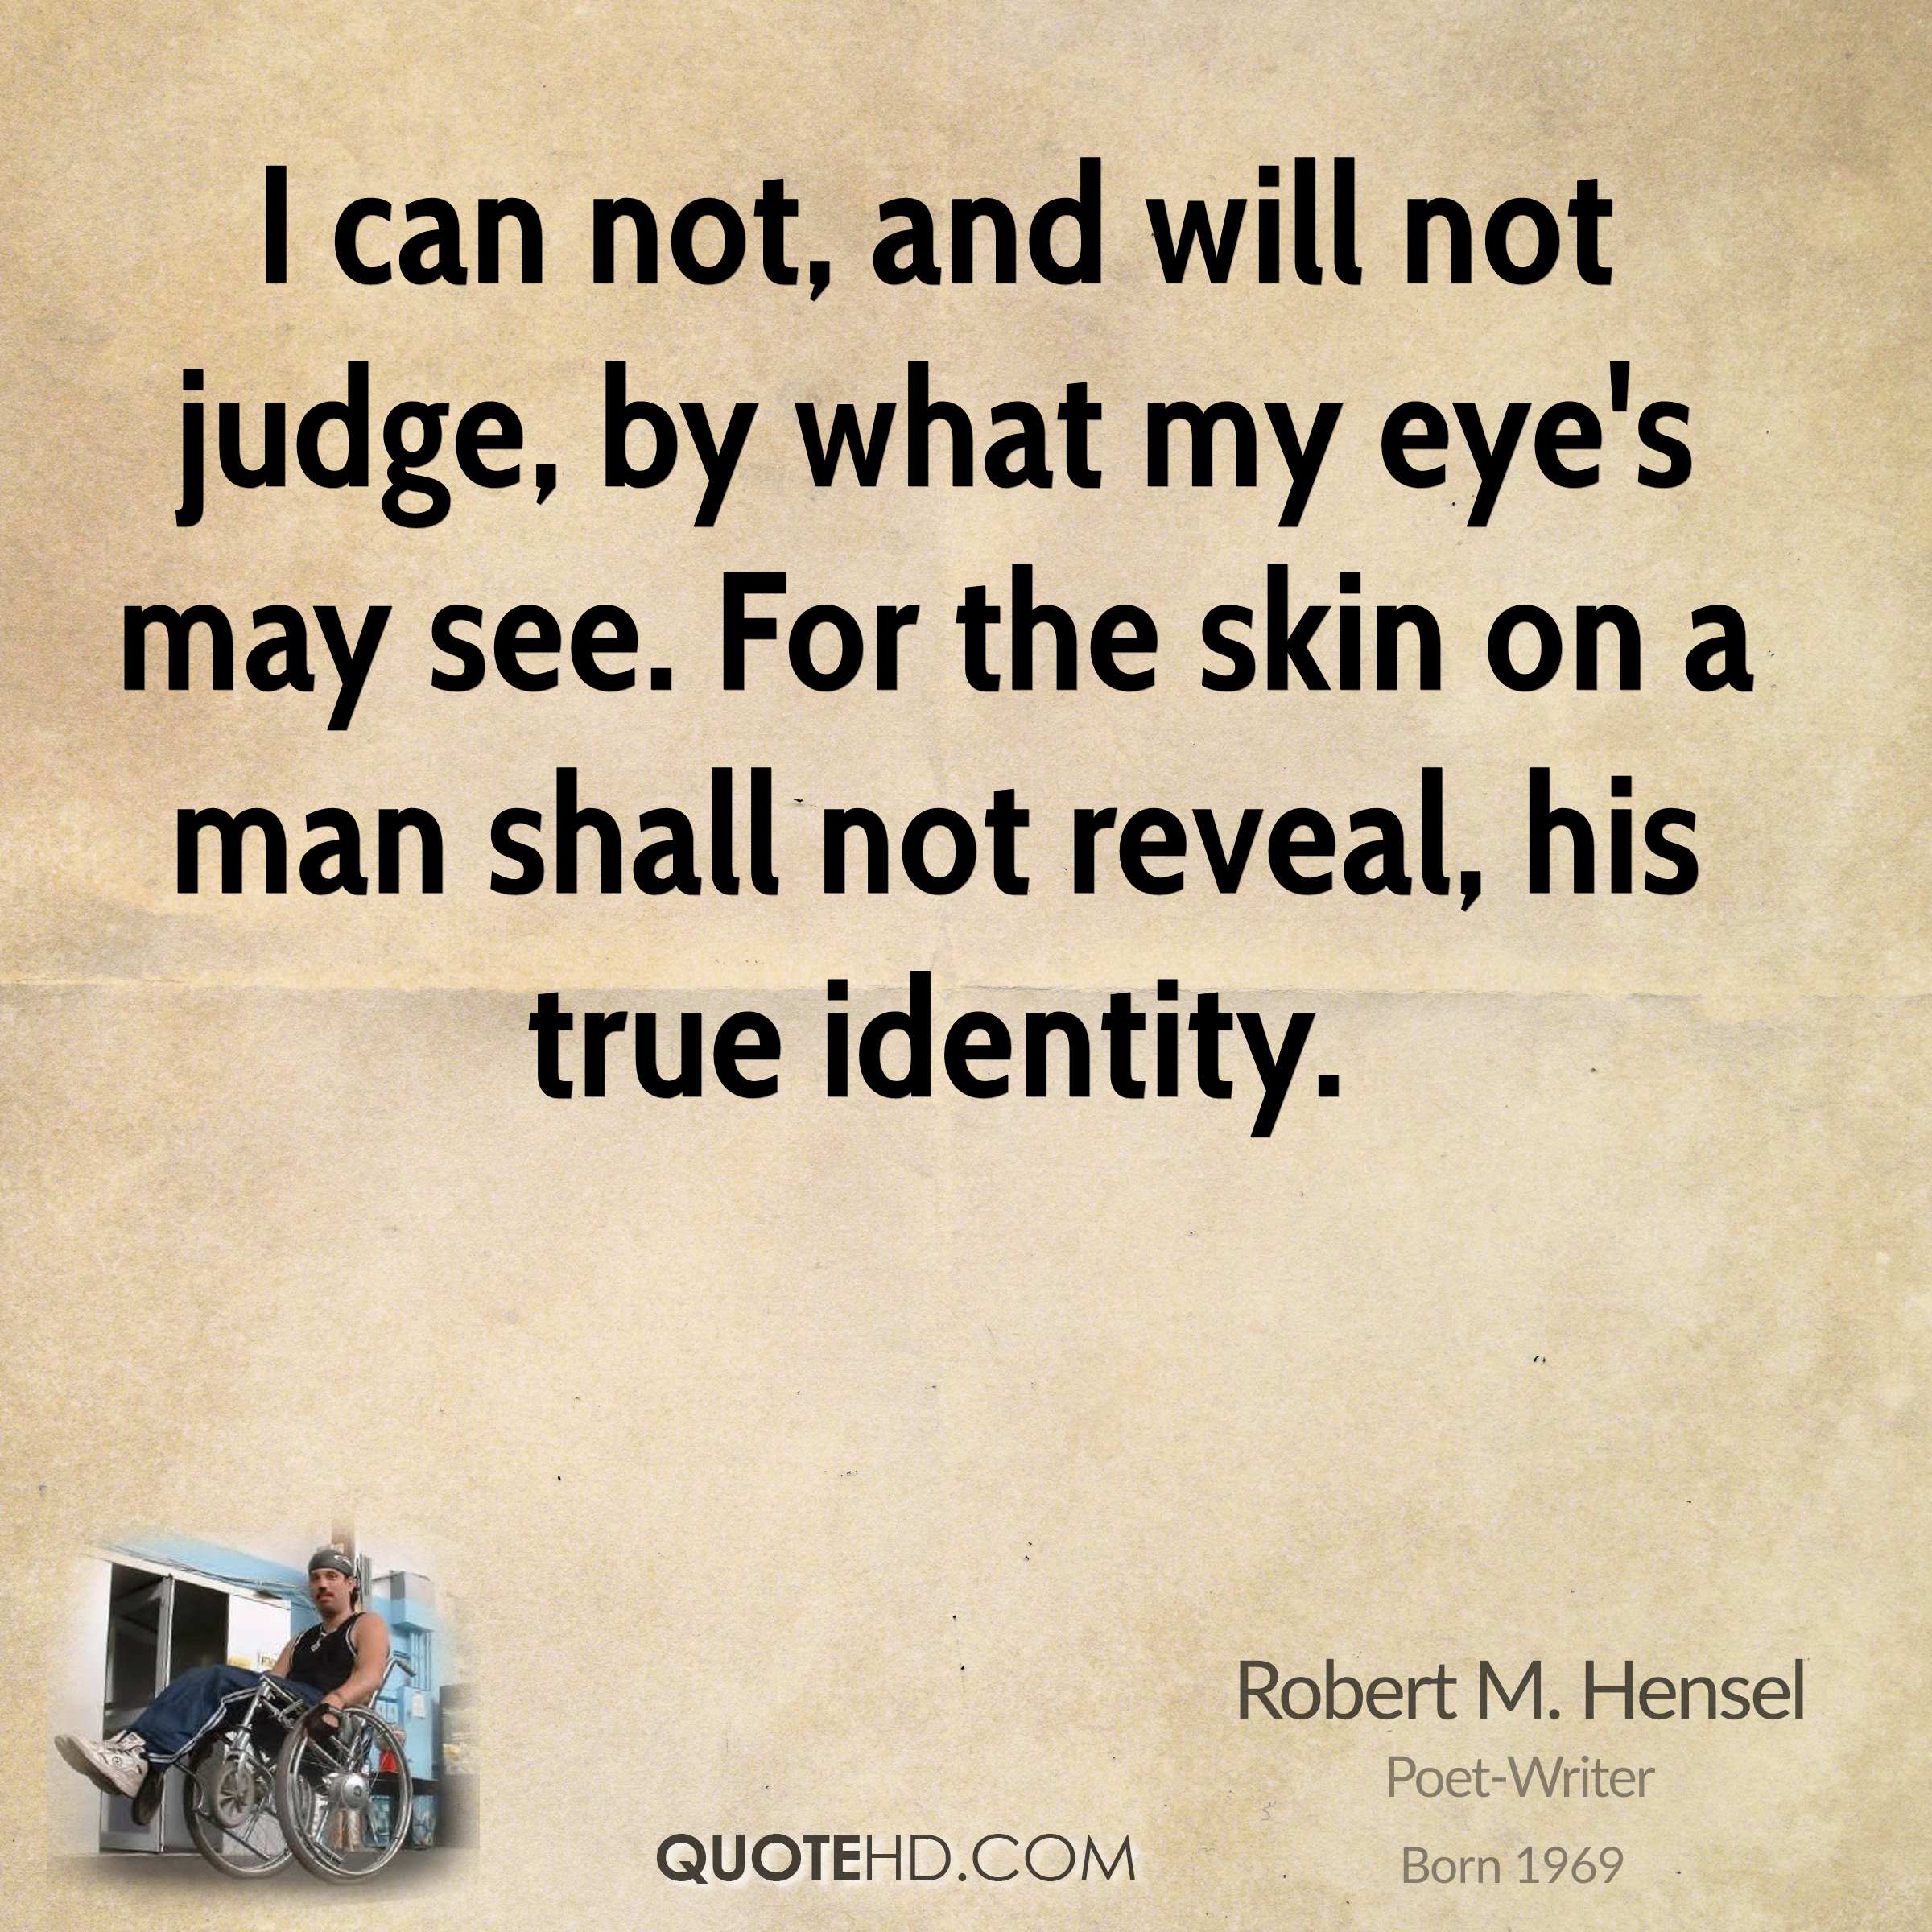 I can not, and will not judge, by what my eye's may see. For the skin on a man shall not reveal, his true identity.